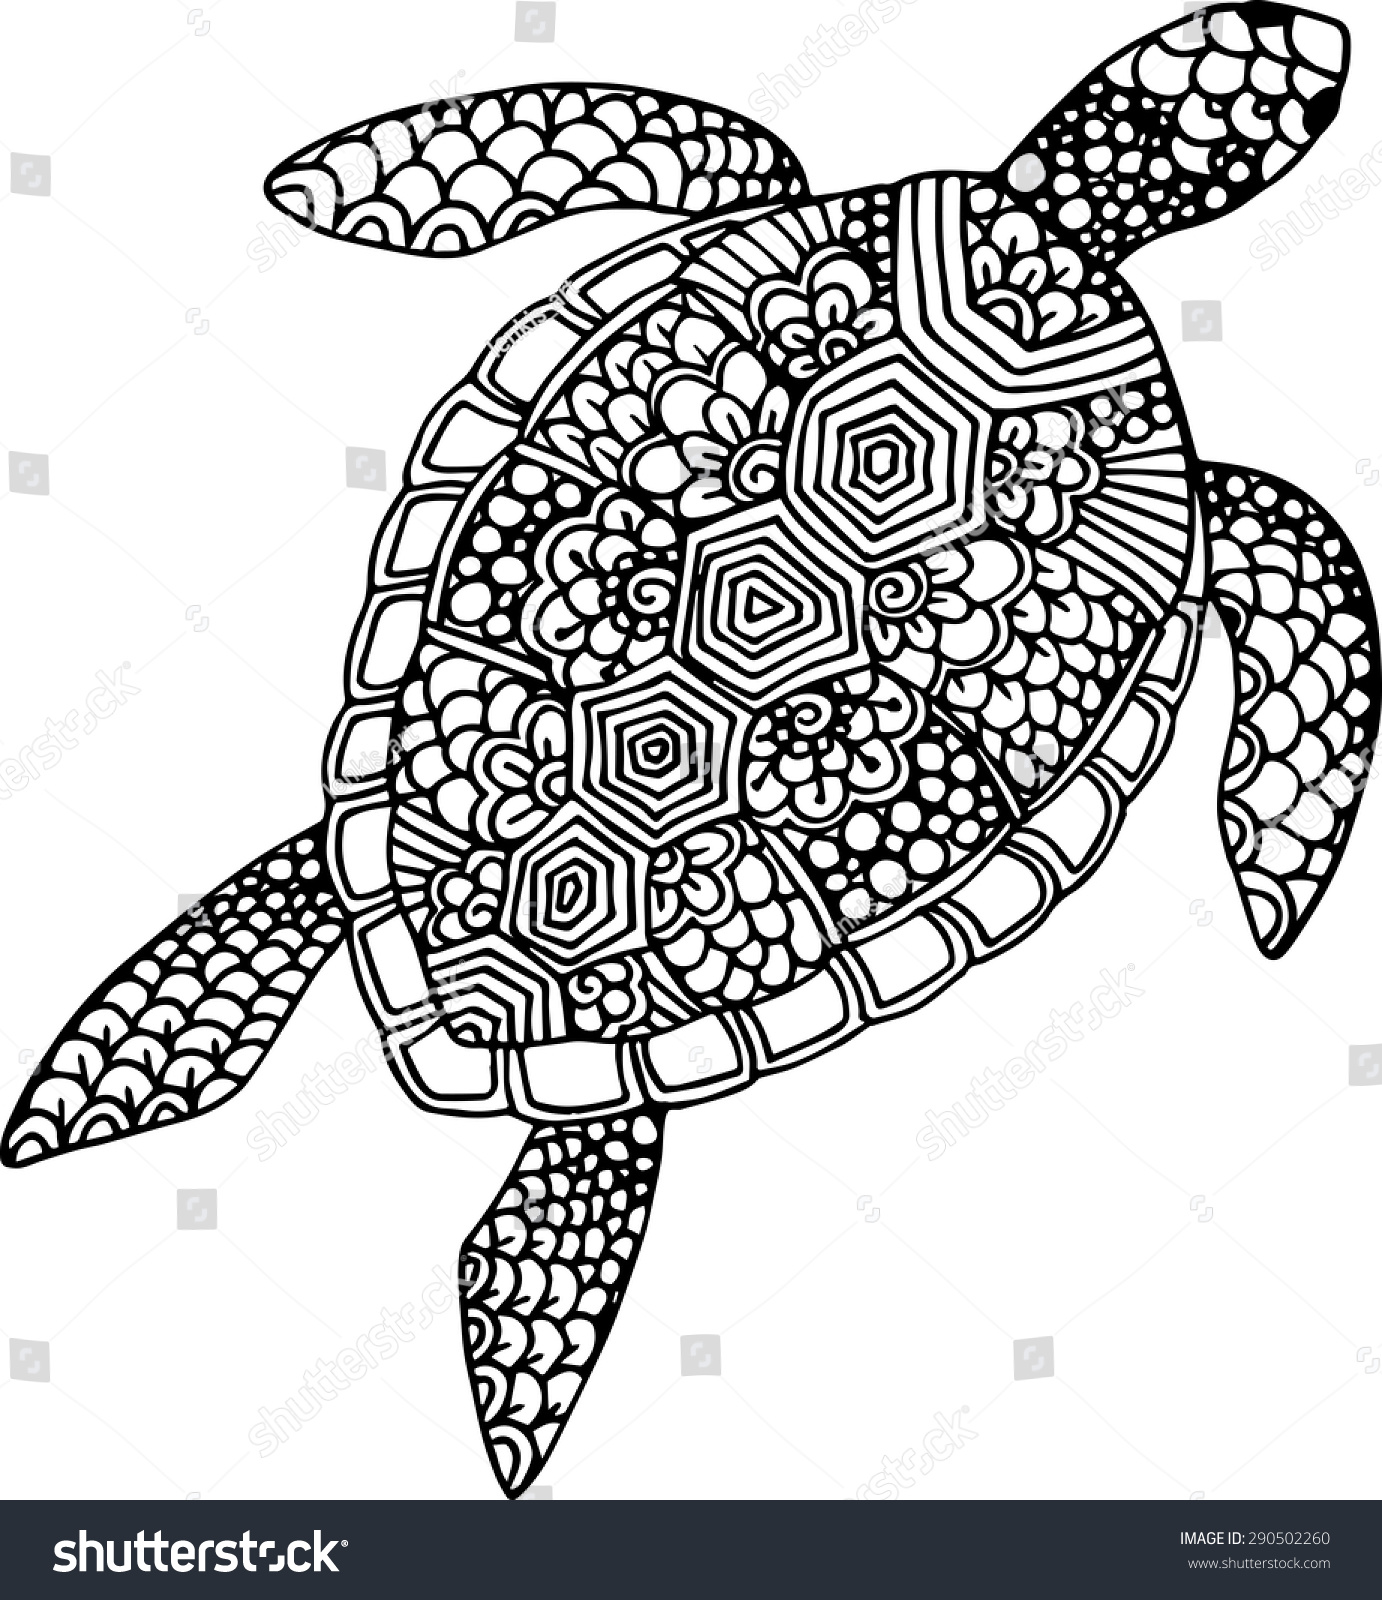 Abstract Turtle Coloring Pages : Stock vector hand drawn and traced doodle turtle